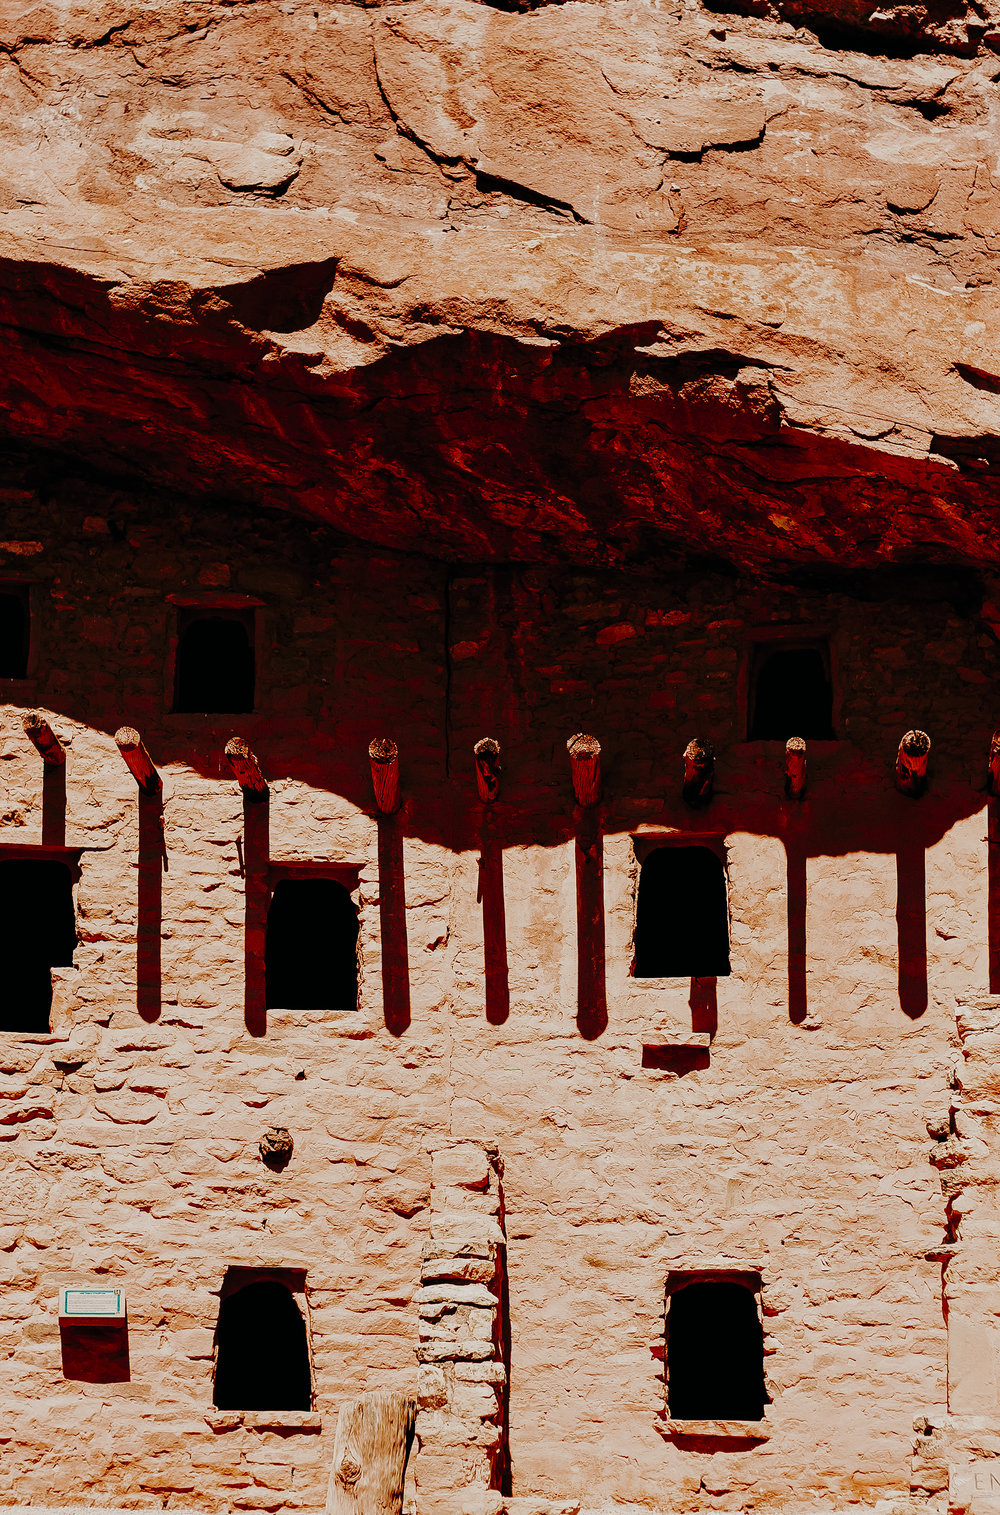 3. Manitou Cliff Dwellings  These Anasazi cliff dwellings date back 800-1000 years old. They've been well preserved, protected, and are open to visitors. The Manitou Cliff Dwellings are the perfect way to step back in time, and learn about the original history and people who lived in Colorado Springs.